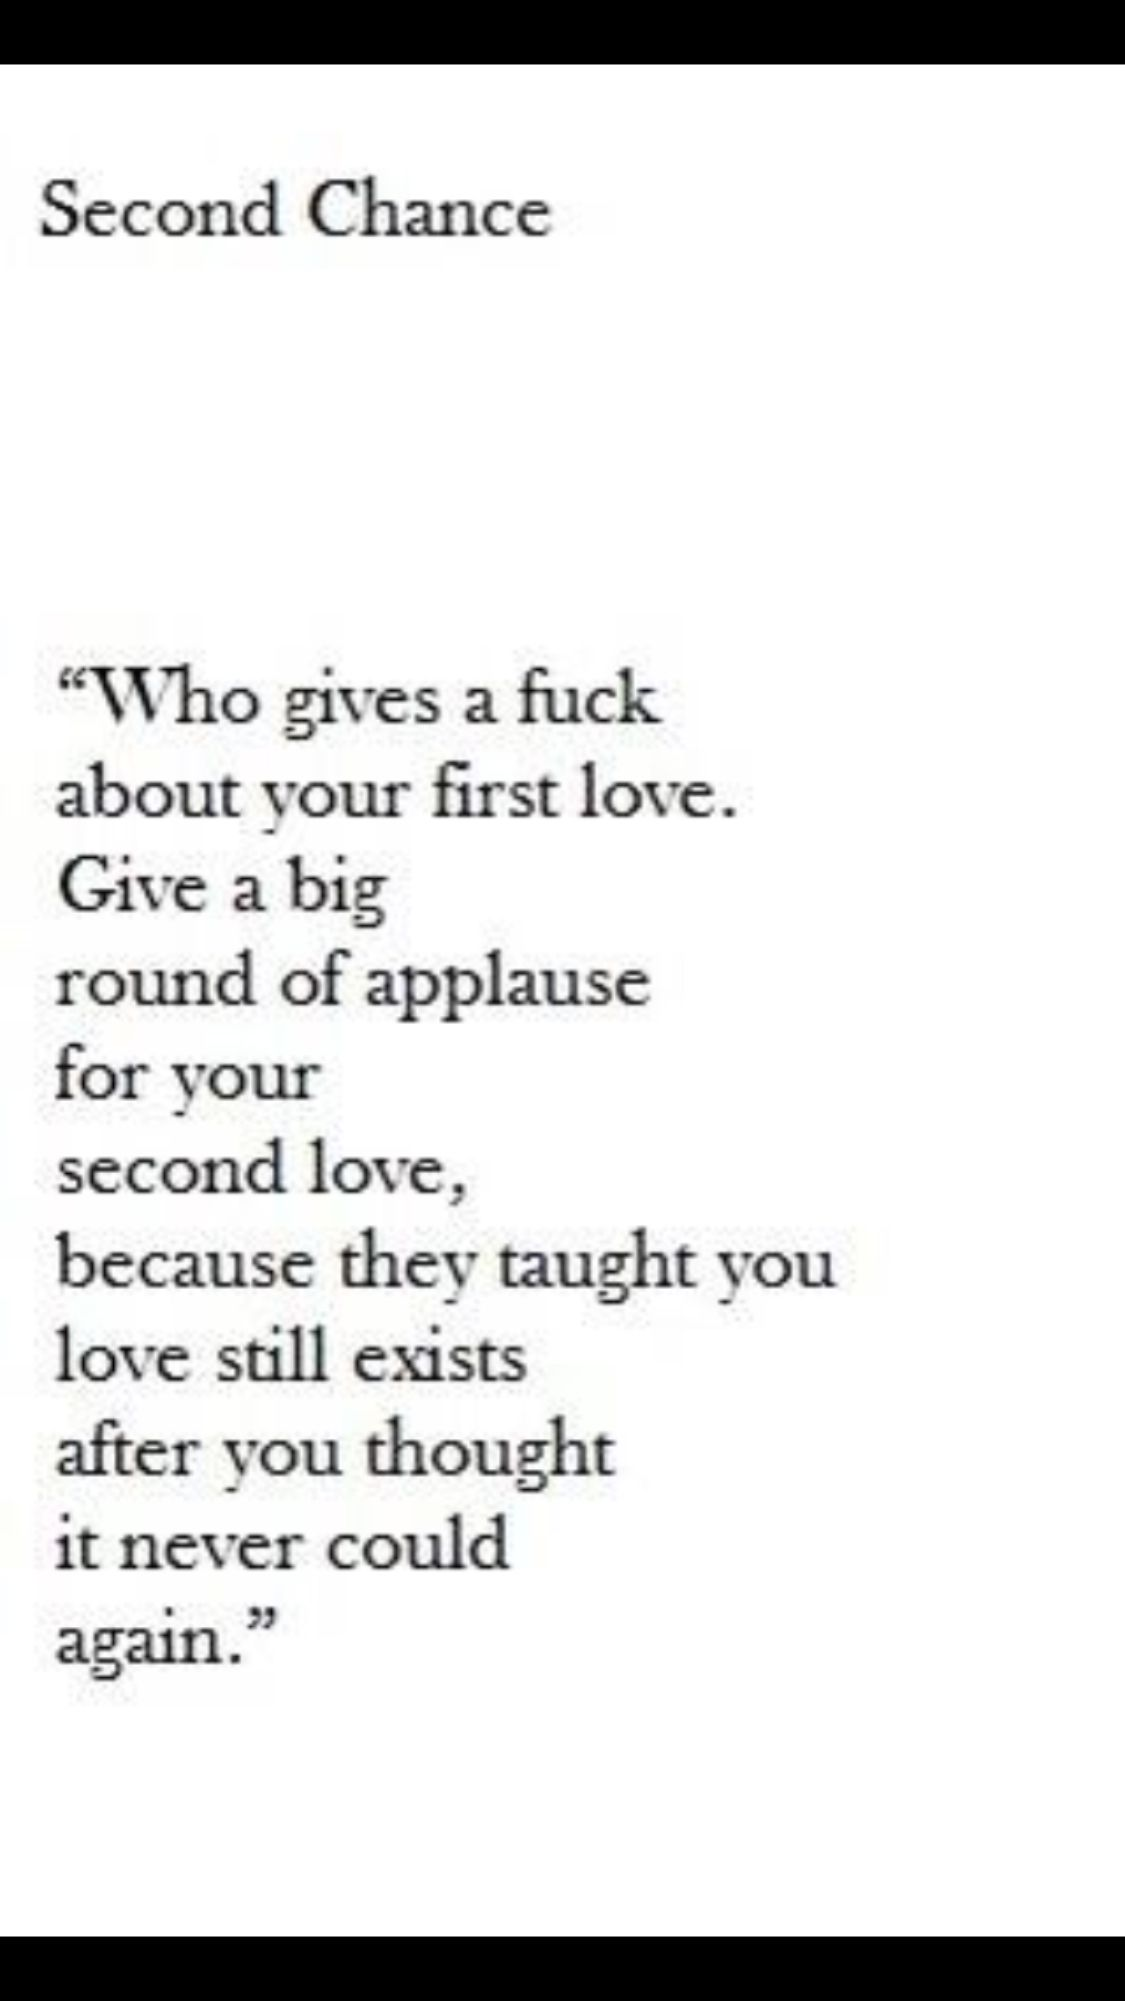 That is why you should not give him a second chance